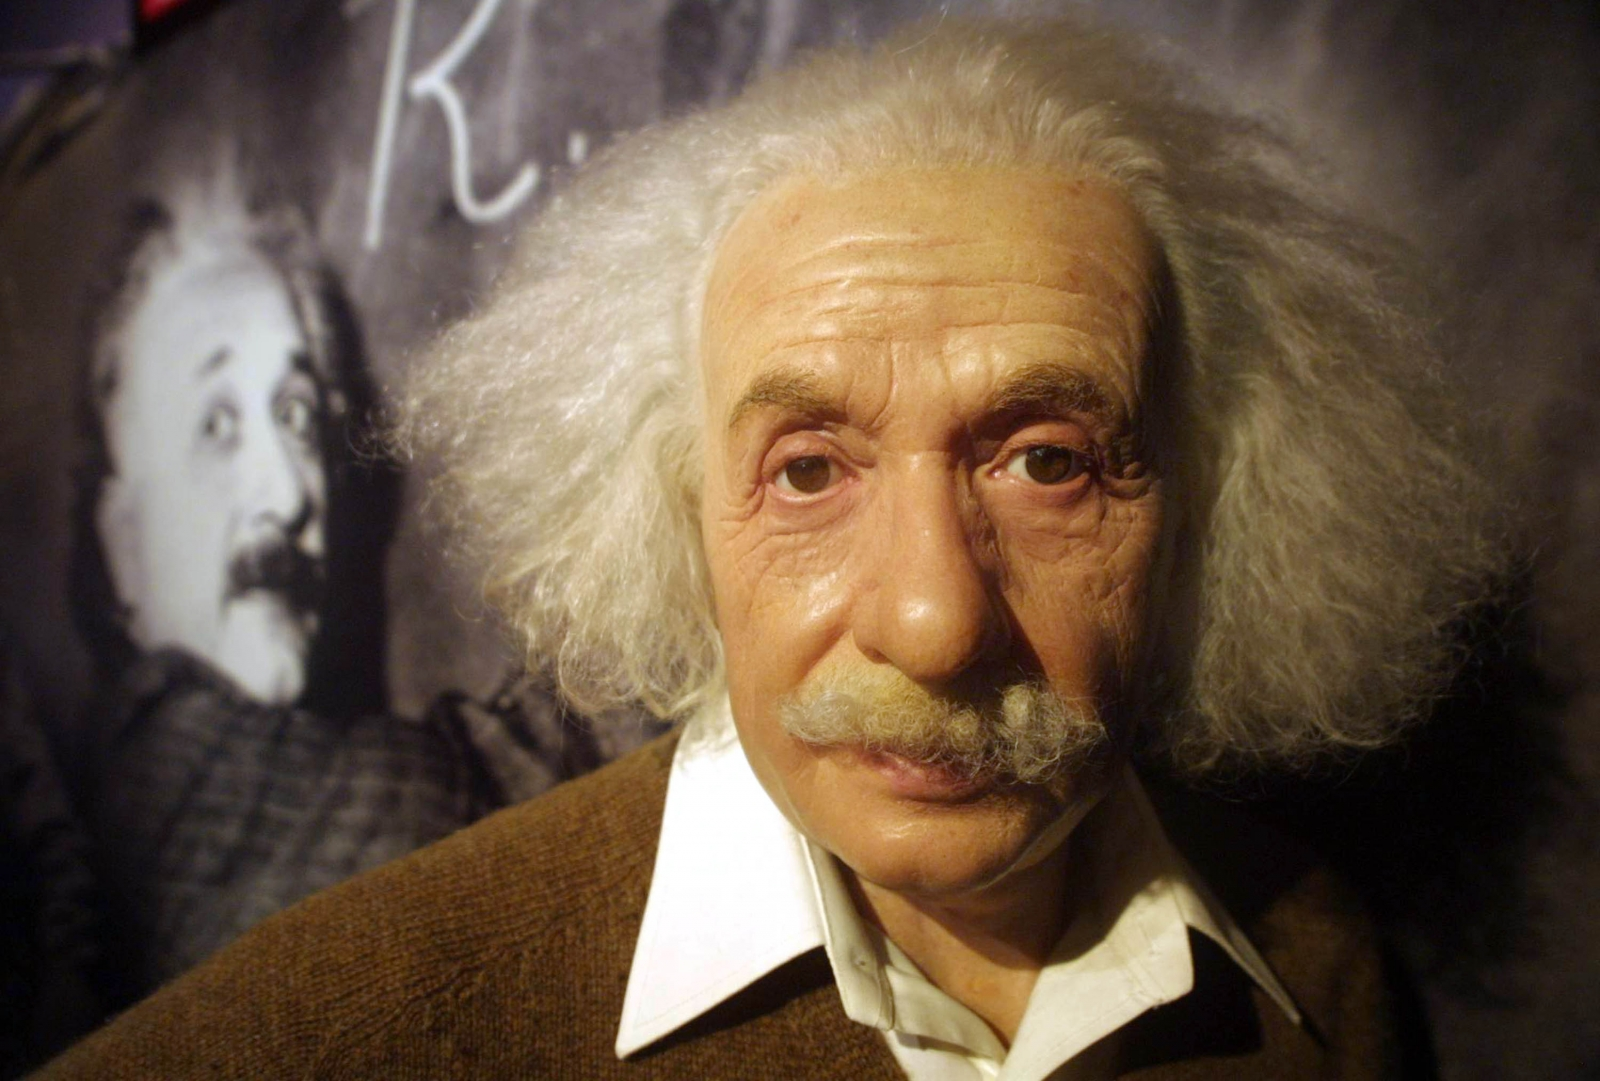 the life and death of albert einstein In 1879, albert einstein was born in ulm, germany he completed his phd at the university of zurich by 1909 his 1905 paper explaining the photoelectric effect, the basis of electronics, earned him the nobel prize in 1921.